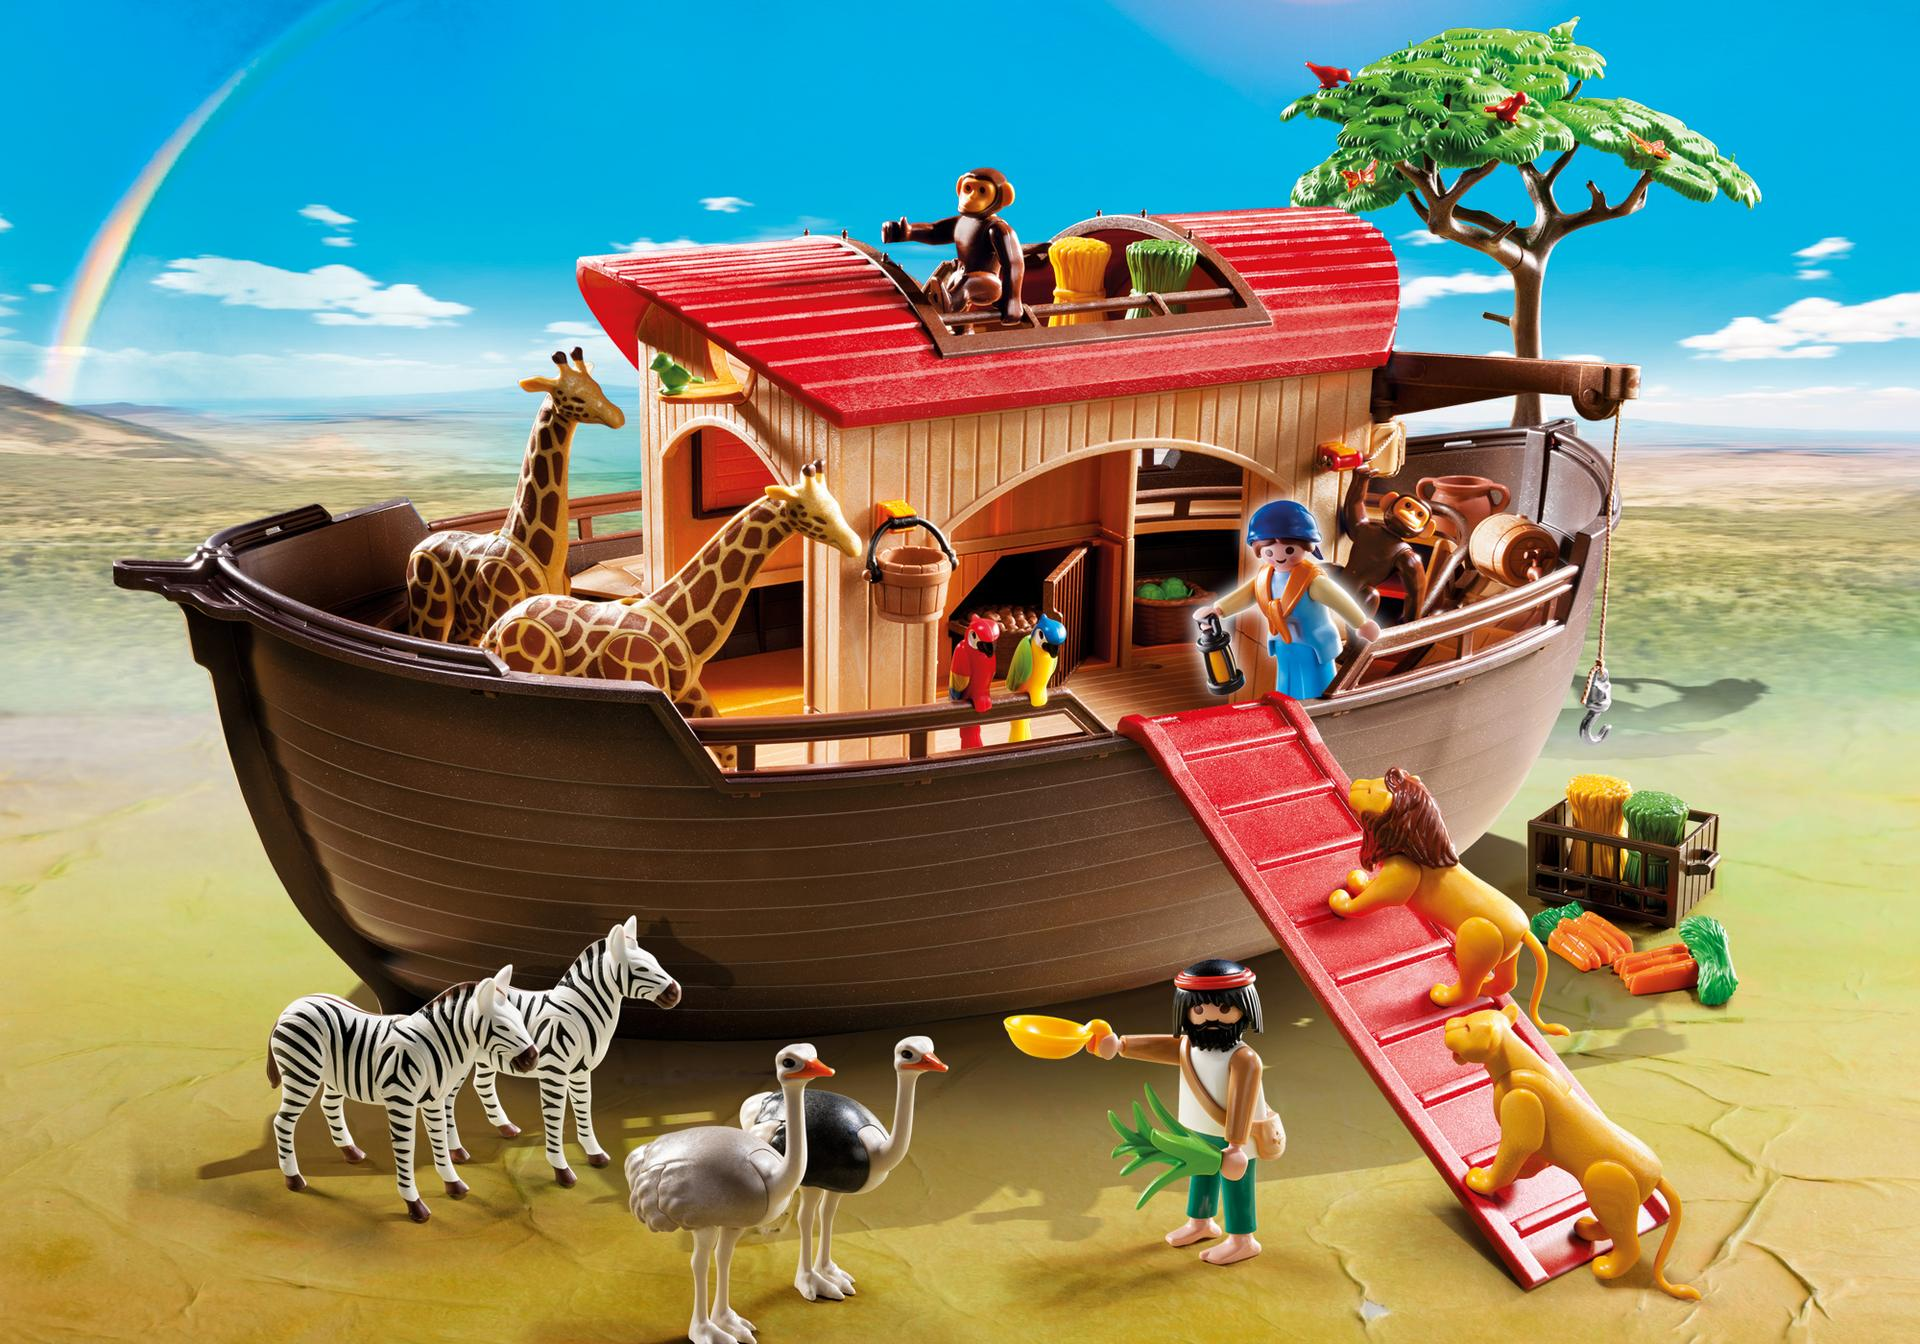 arche de no avec animaux de la savane 5276 a playmobil suisse. Black Bedroom Furniture Sets. Home Design Ideas